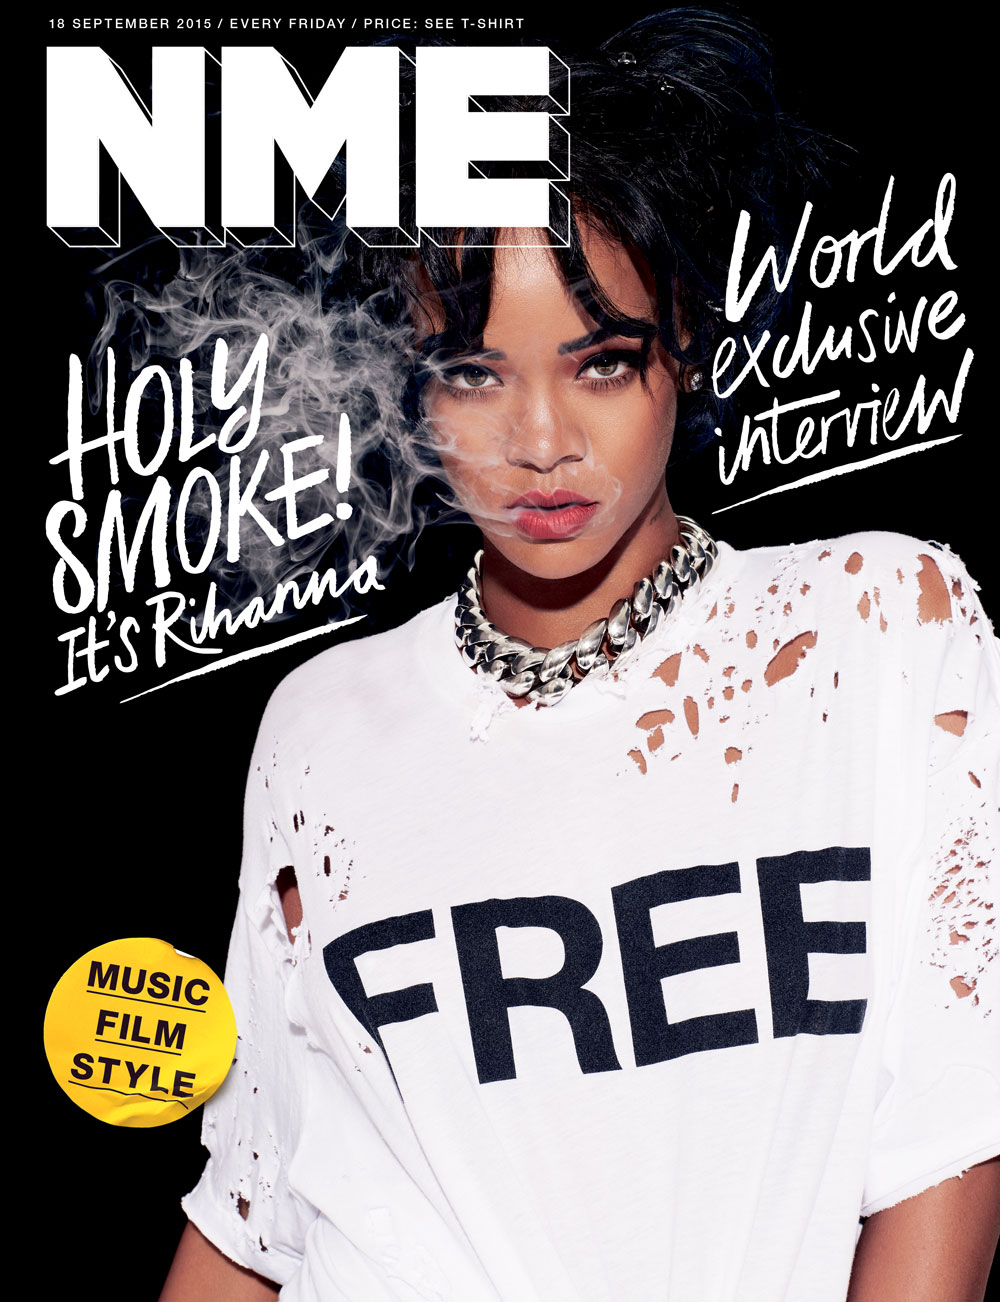 © NME magazine/Andy Hughes